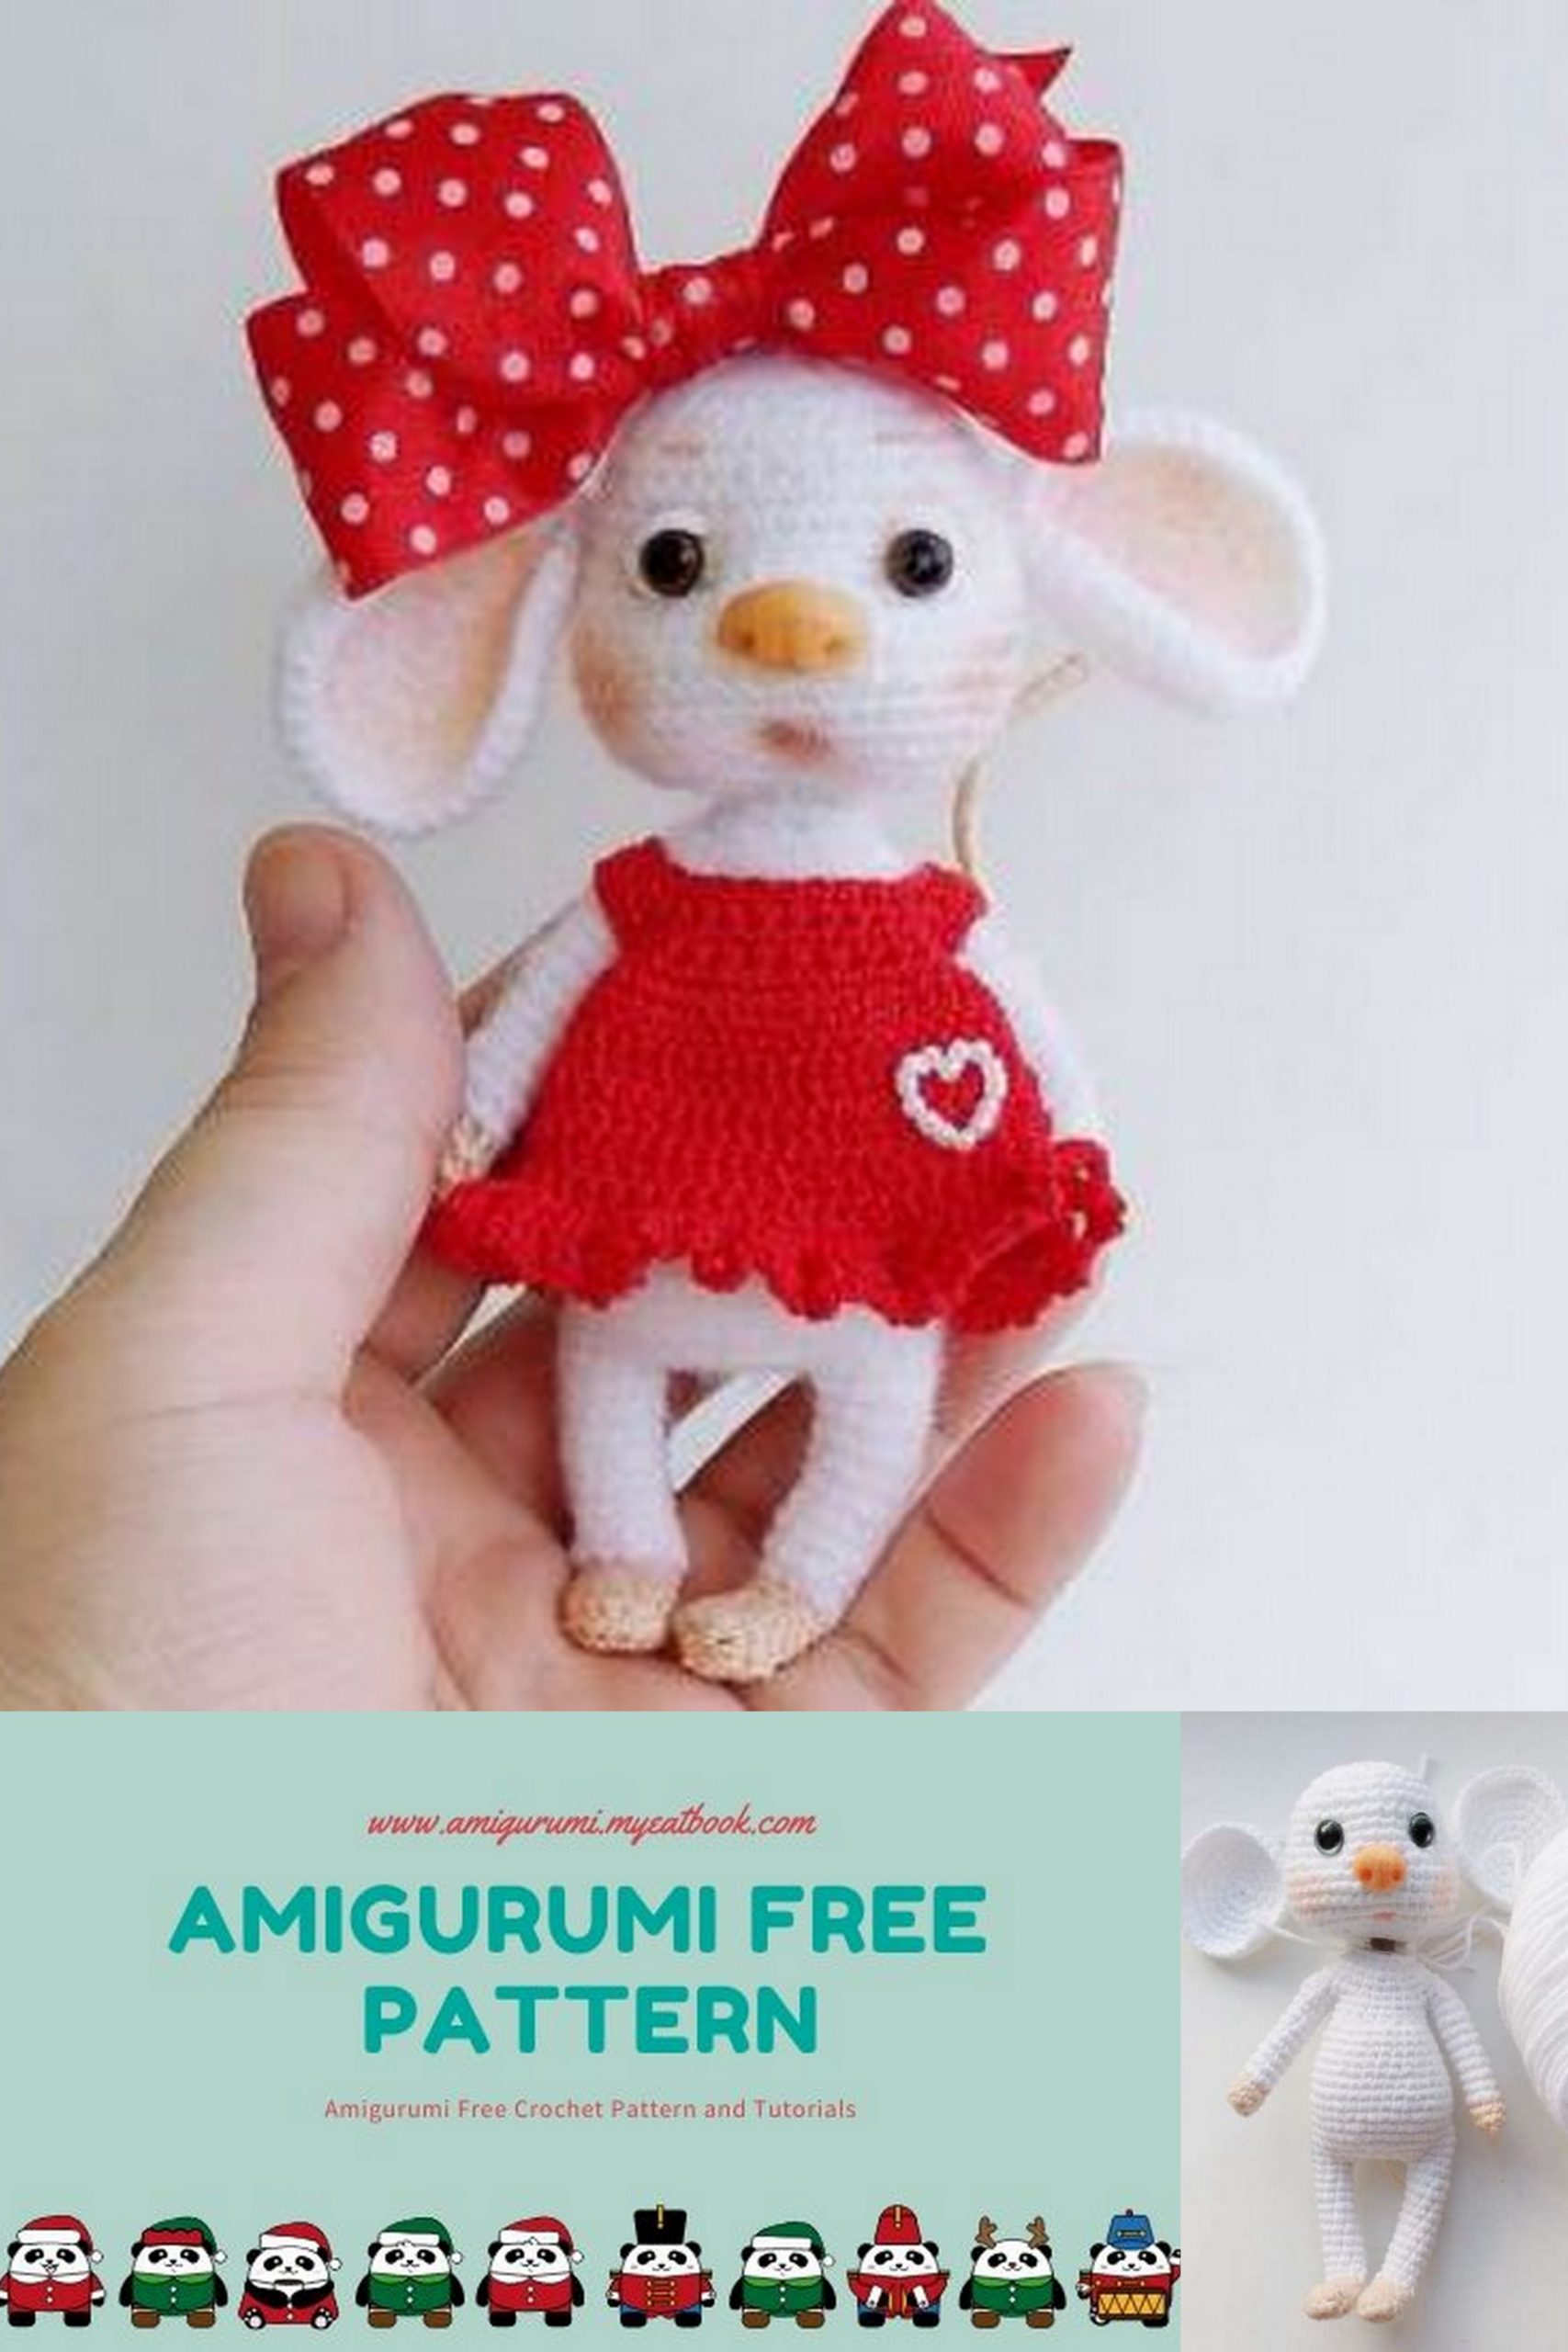 Crochet Baby Mouse Amigurumi Pattern - Amigurumi Crochet Animals ... | 2560x1707